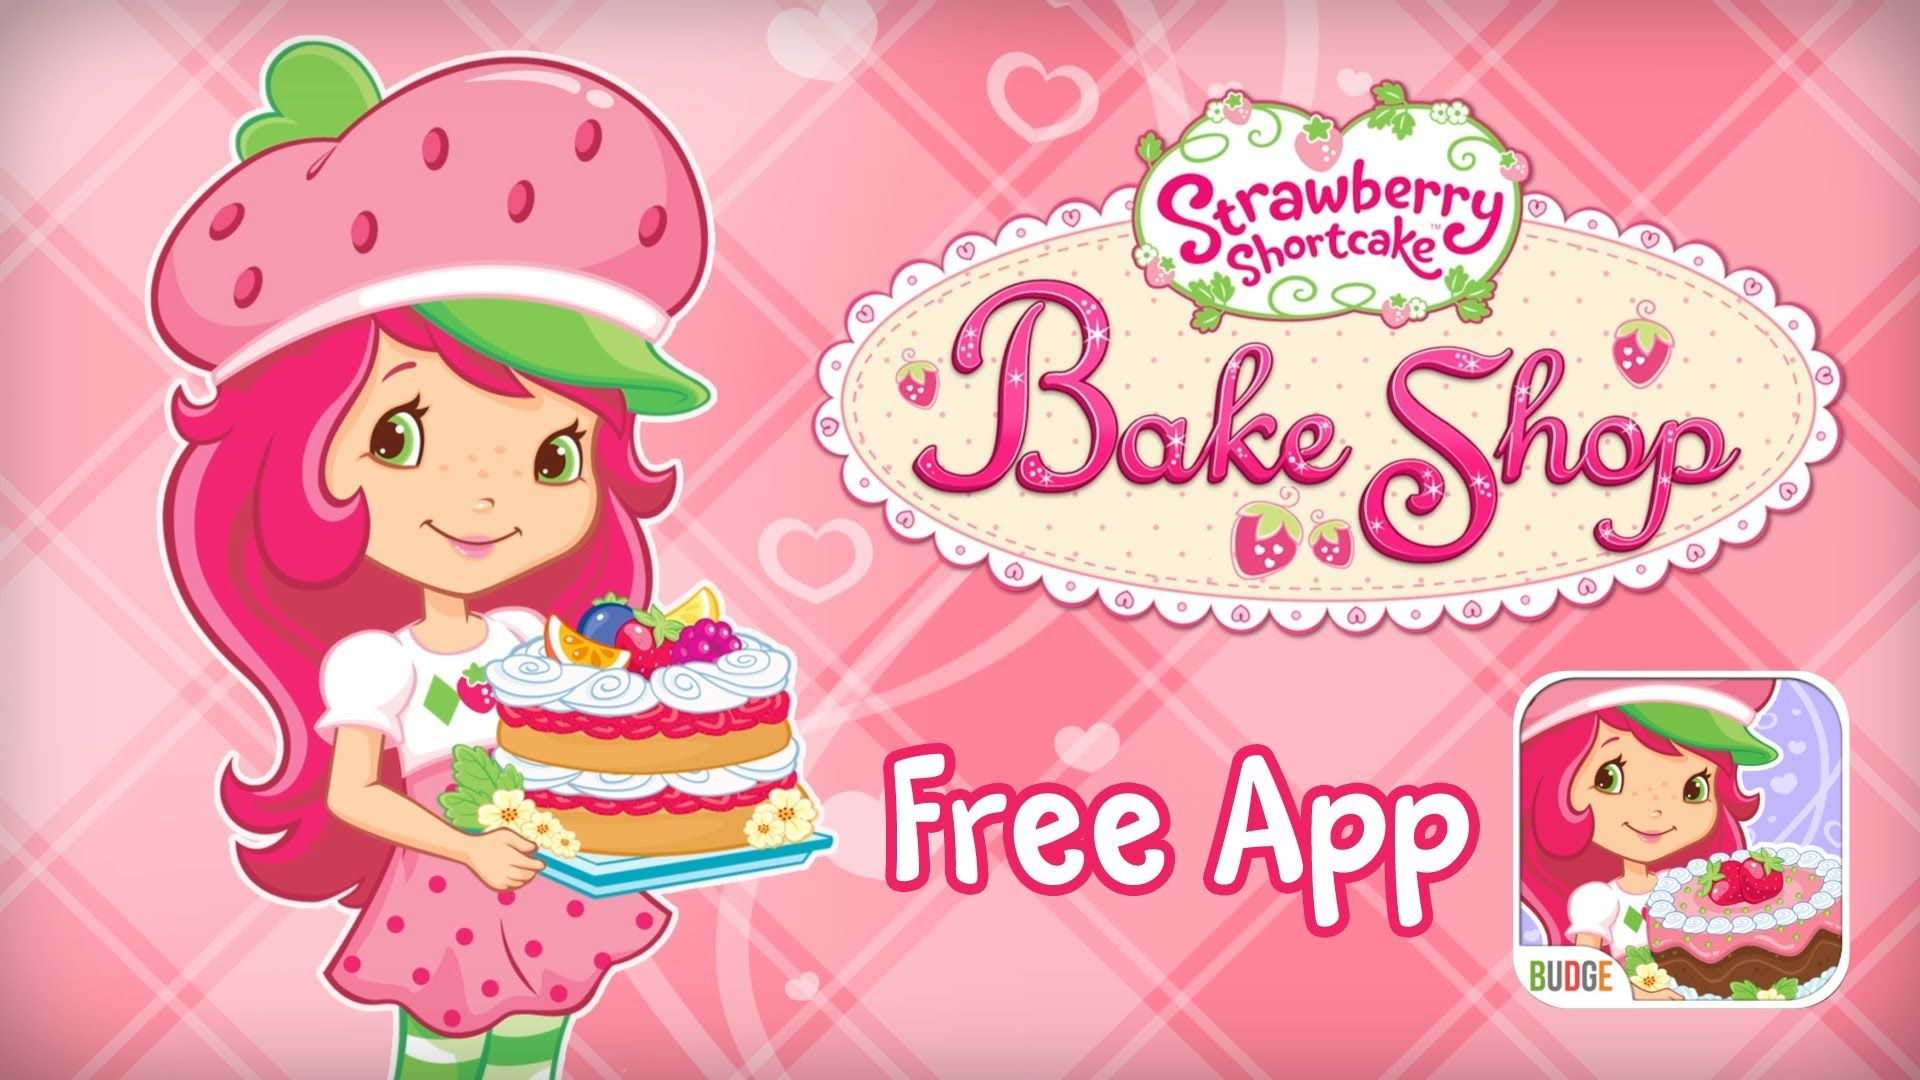 Cook Up Some Fun With Strawberry Shortcake In Her Berry New App Download For Strawberry Shortcake Bake Shop Strawberry Shortcake Strawberry Shortcake Birthday